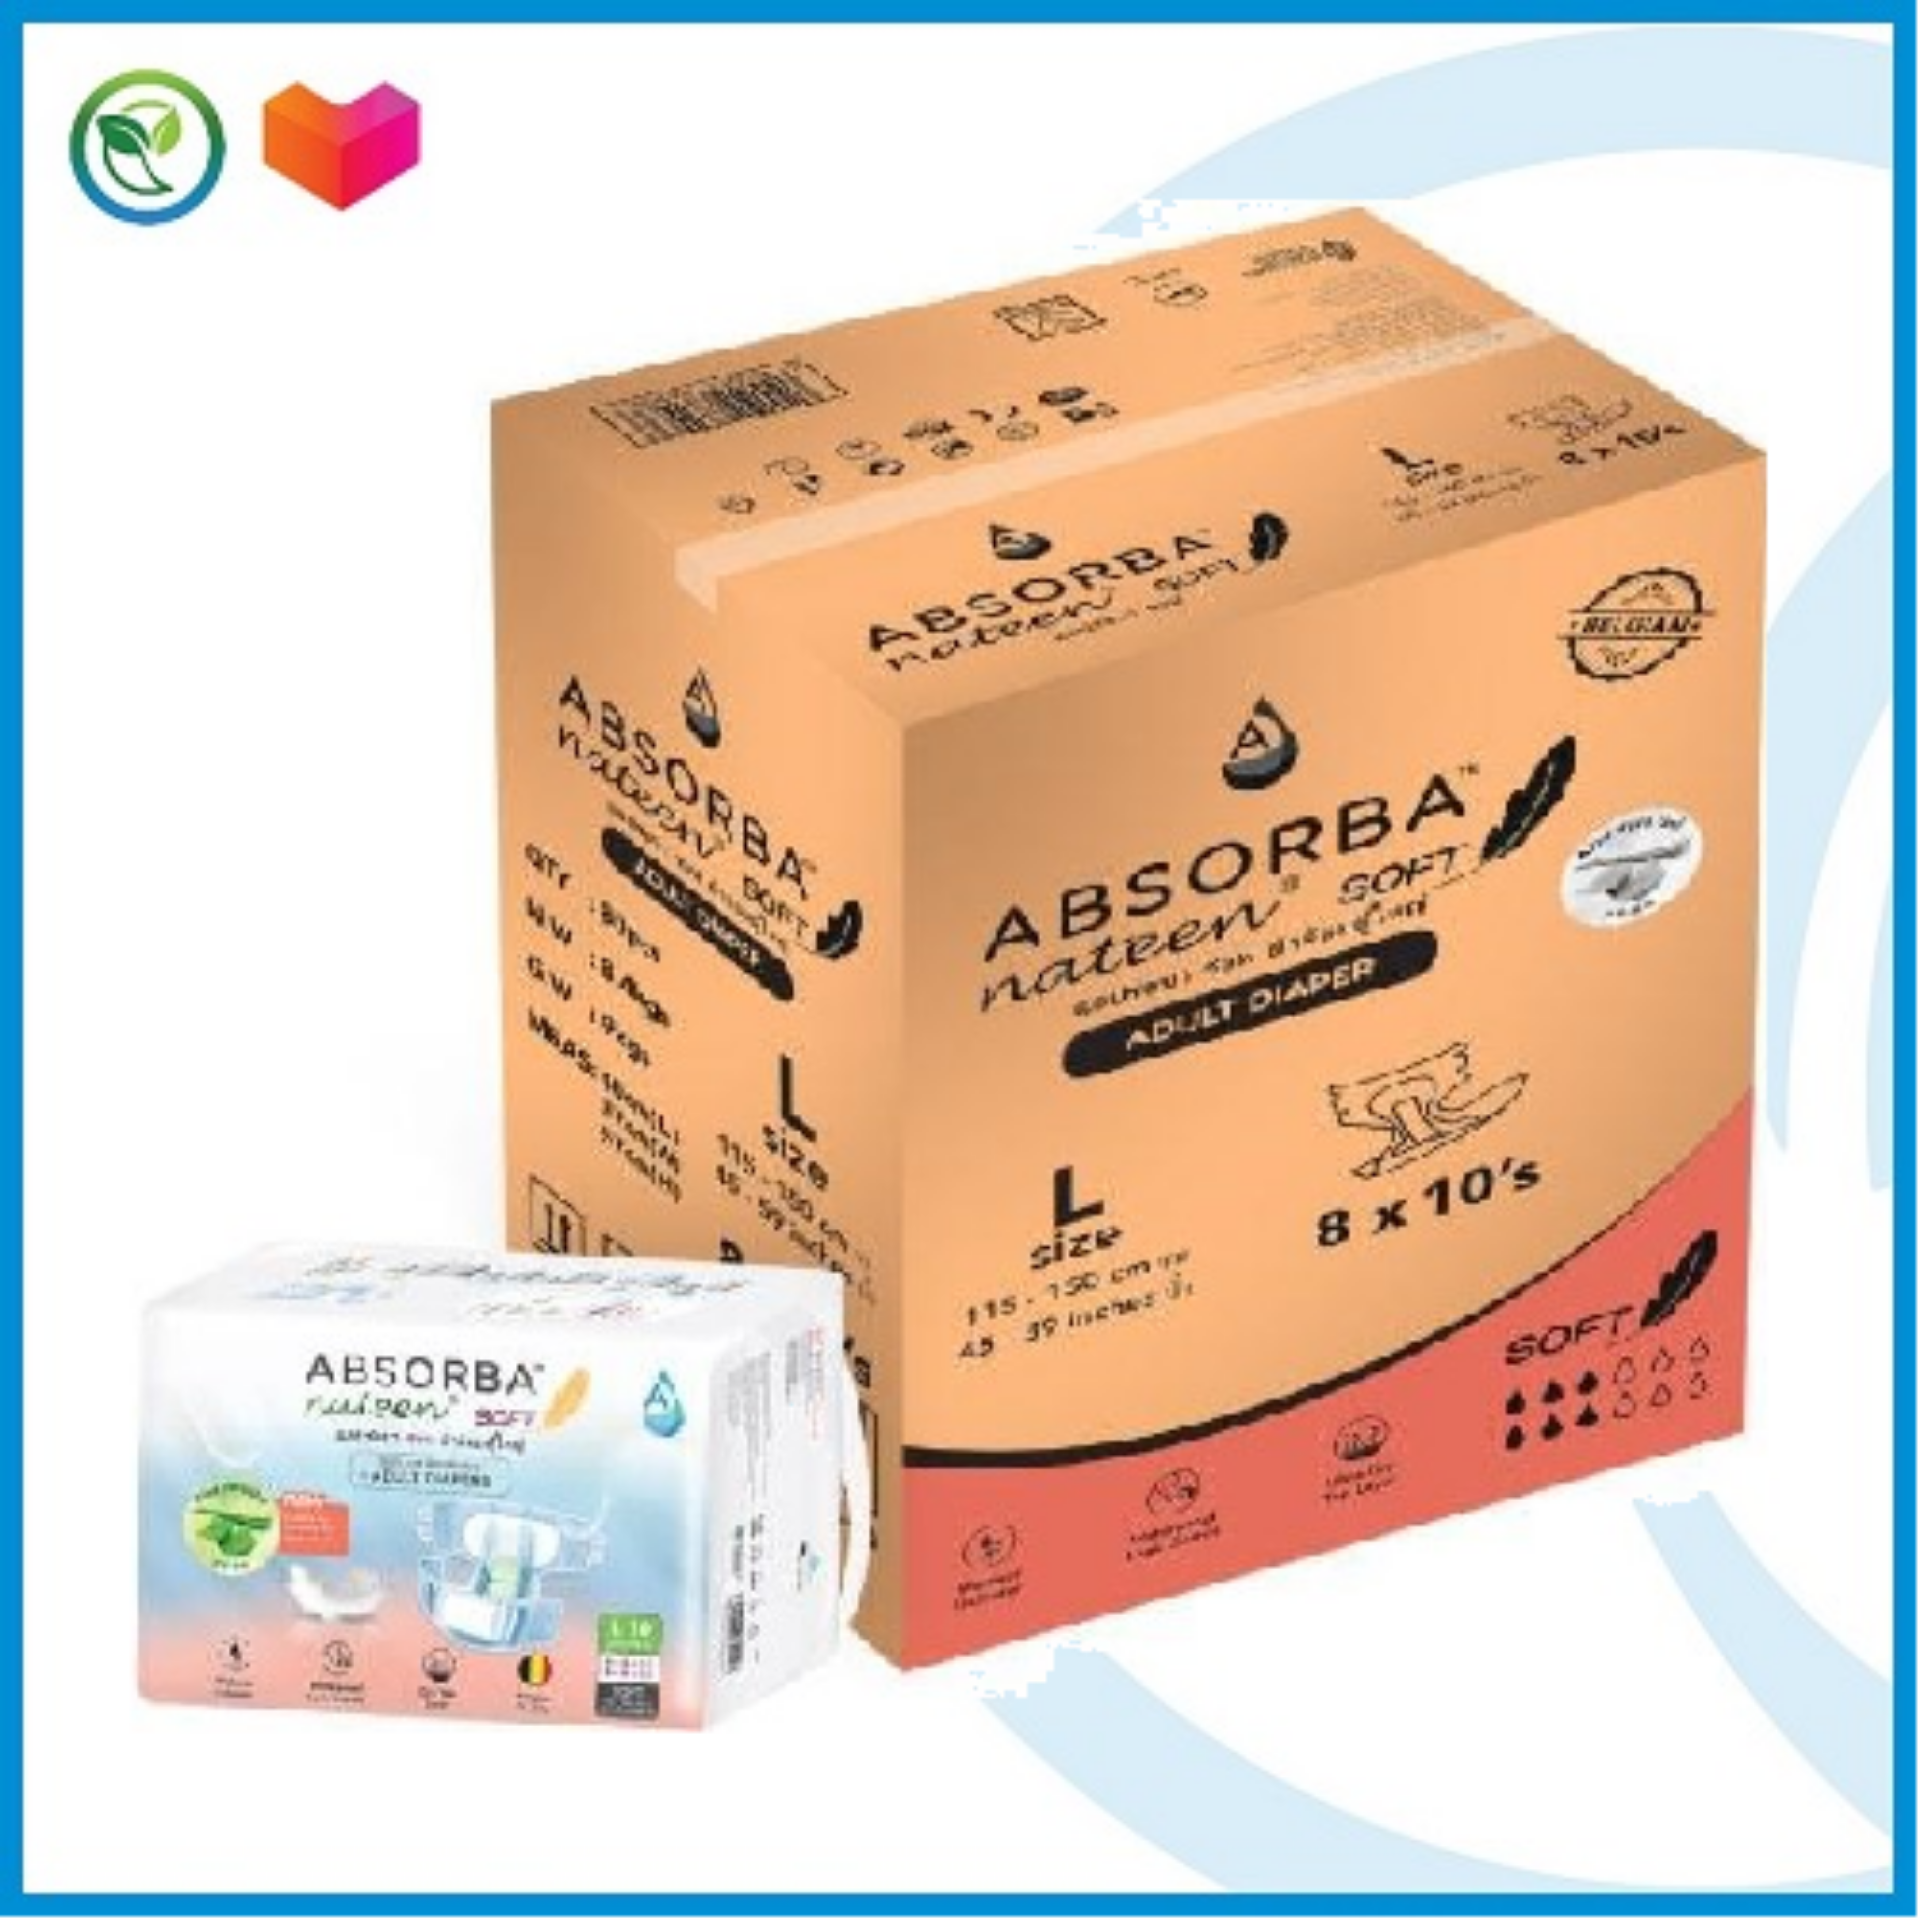 Absorba Nateen Adult Diapers Soft (L) 10s x 8 Pack